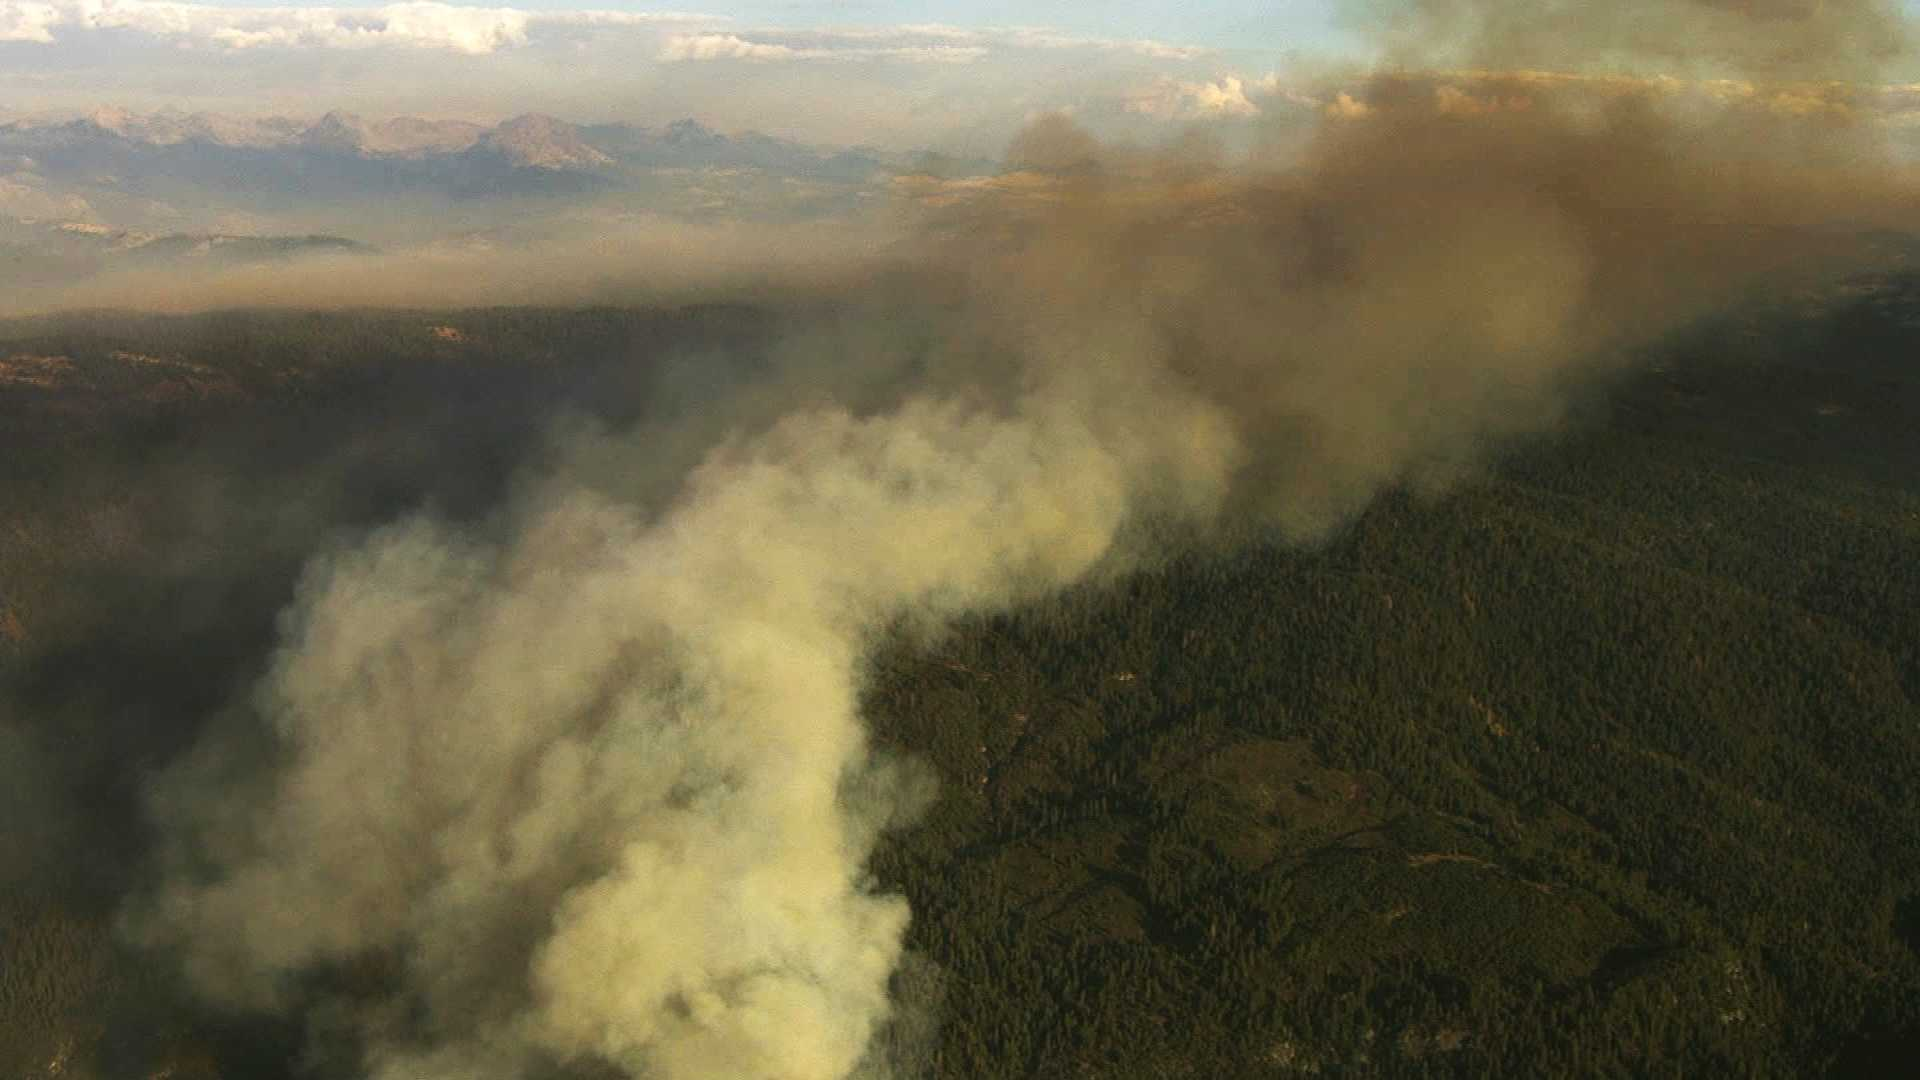 KCRA's LiveCopter 3 shows the Dog Rock Fire burning near Yosemite National Park. (Oct. 7, 2014)